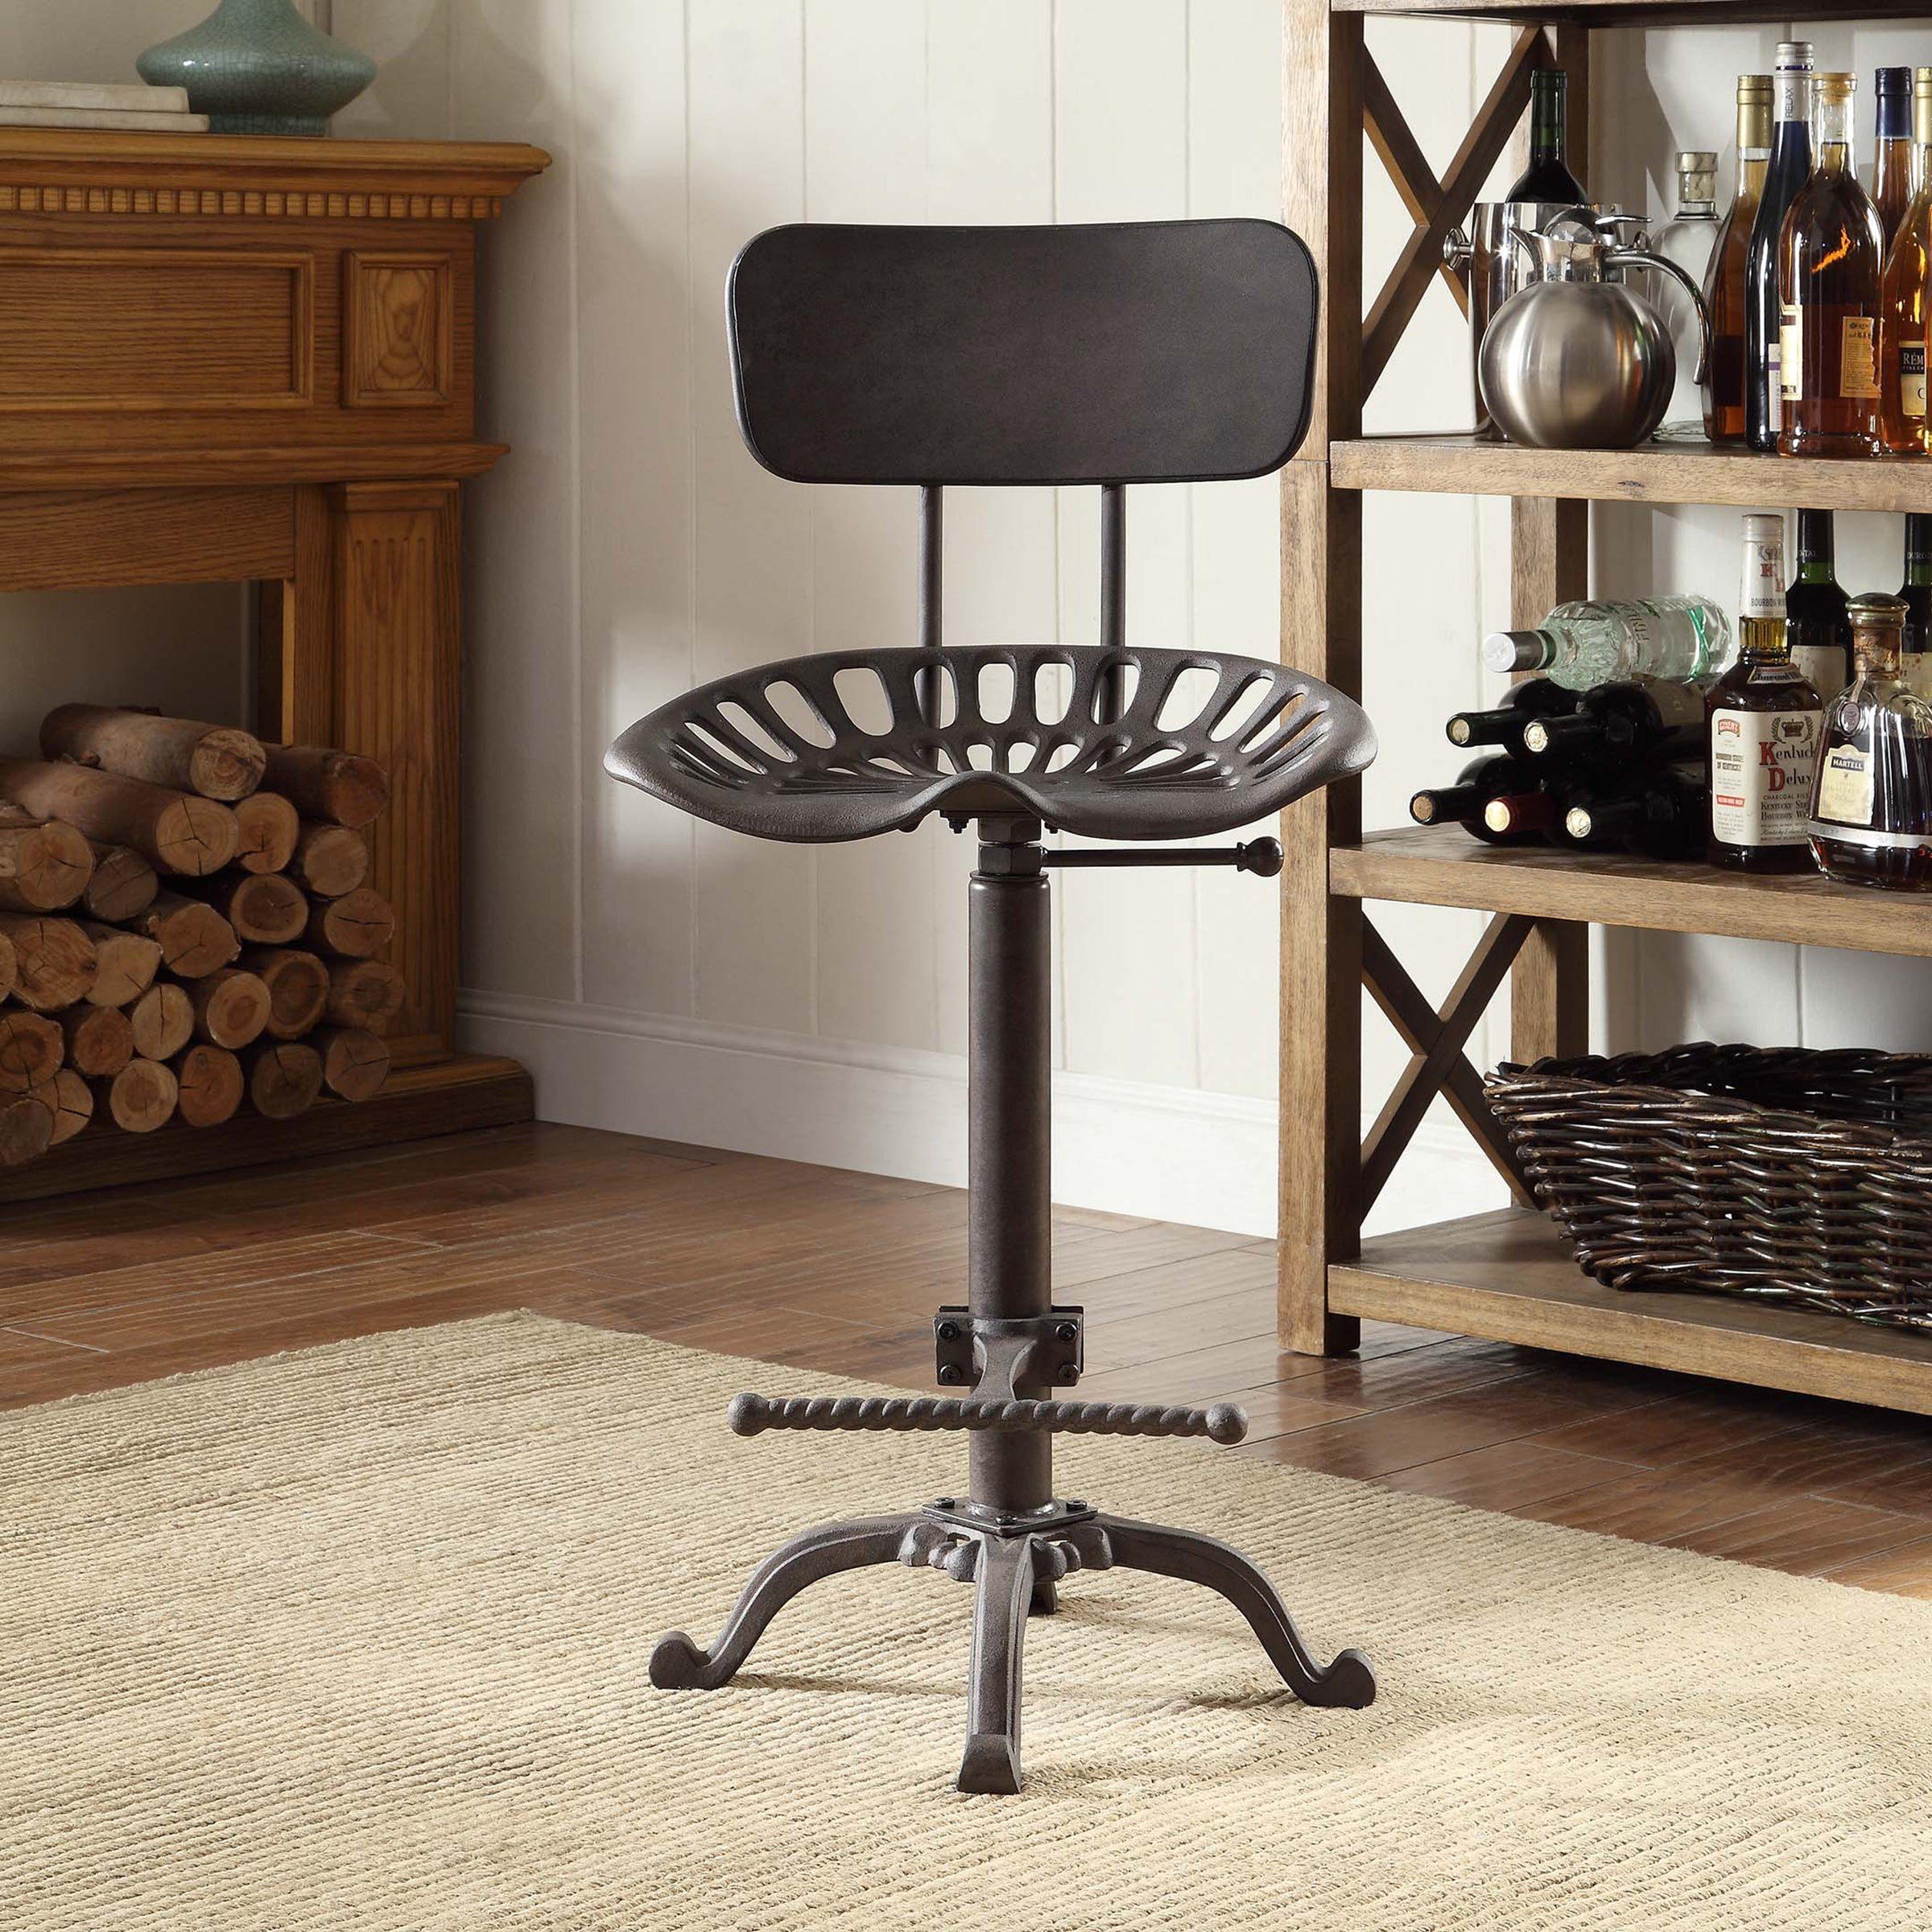 Shop Pine Canopy Shawnee Grey Cast Iron Tractor Seat Stool   On Sale   Free  Shipping Today   Overstock.com   20254232